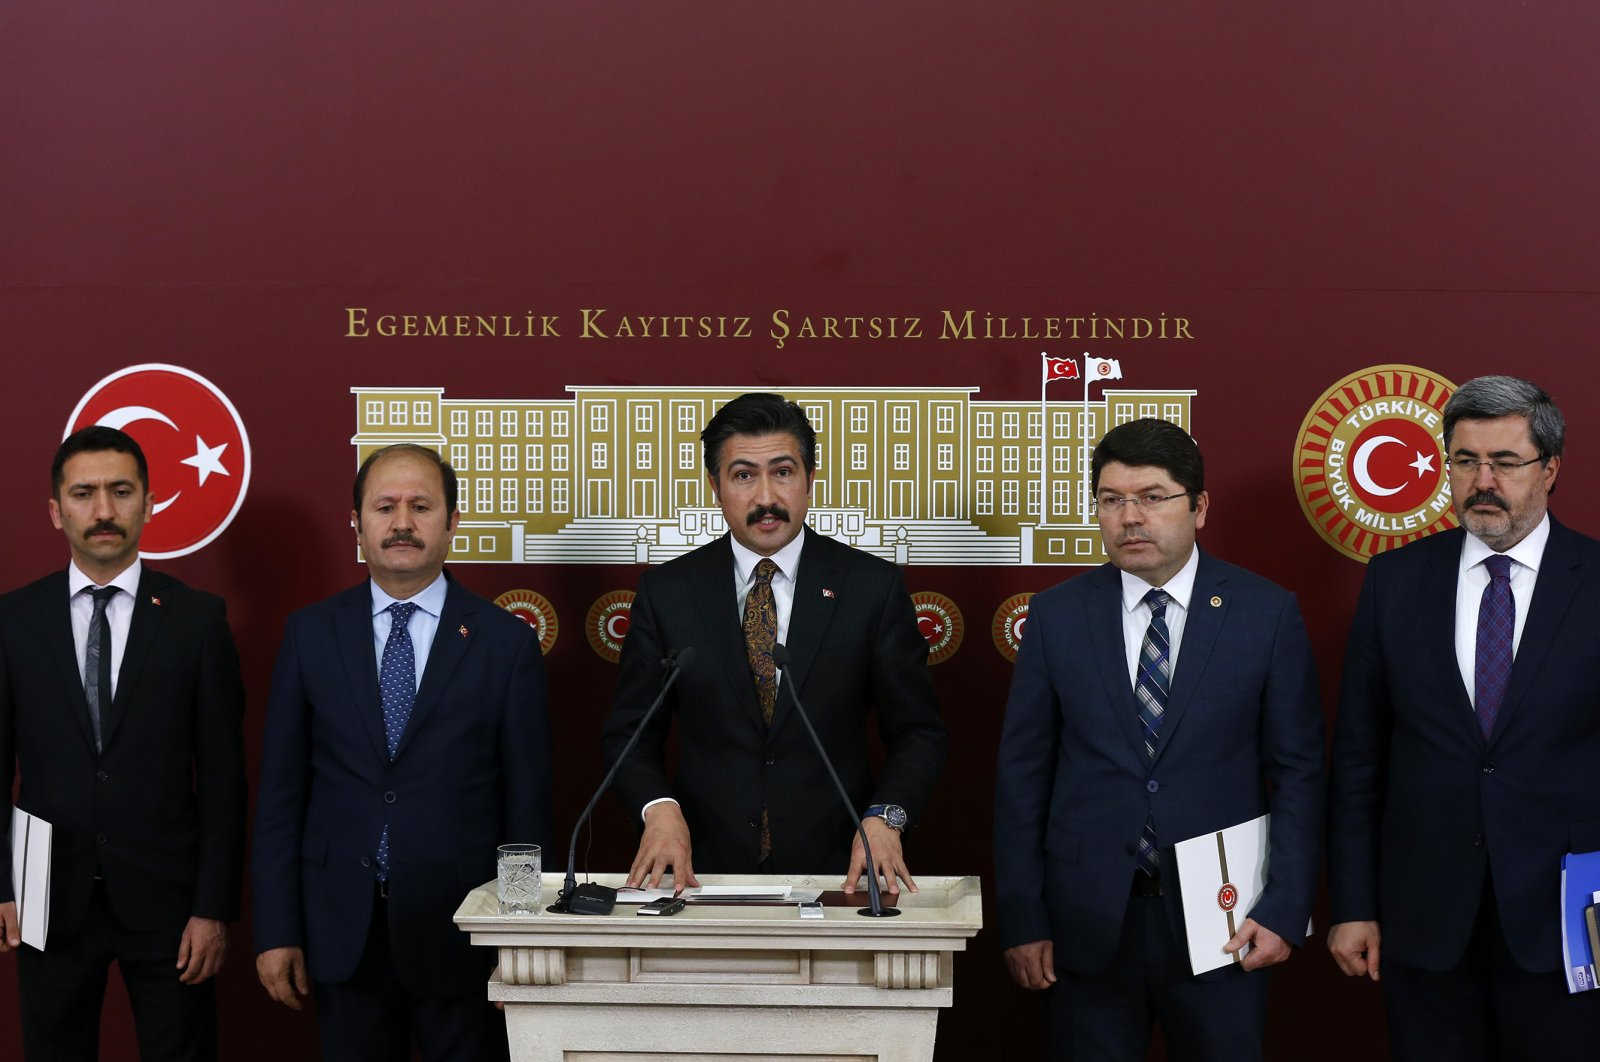 Deputy head of the AK Party's parliamentary group Cahit Özkan (C) reveals the details of the new policy on criminals alongside with deputies from both AK Party and MHP in the parliament, Ankara, Tuesday, March 31, 2020. (AA)